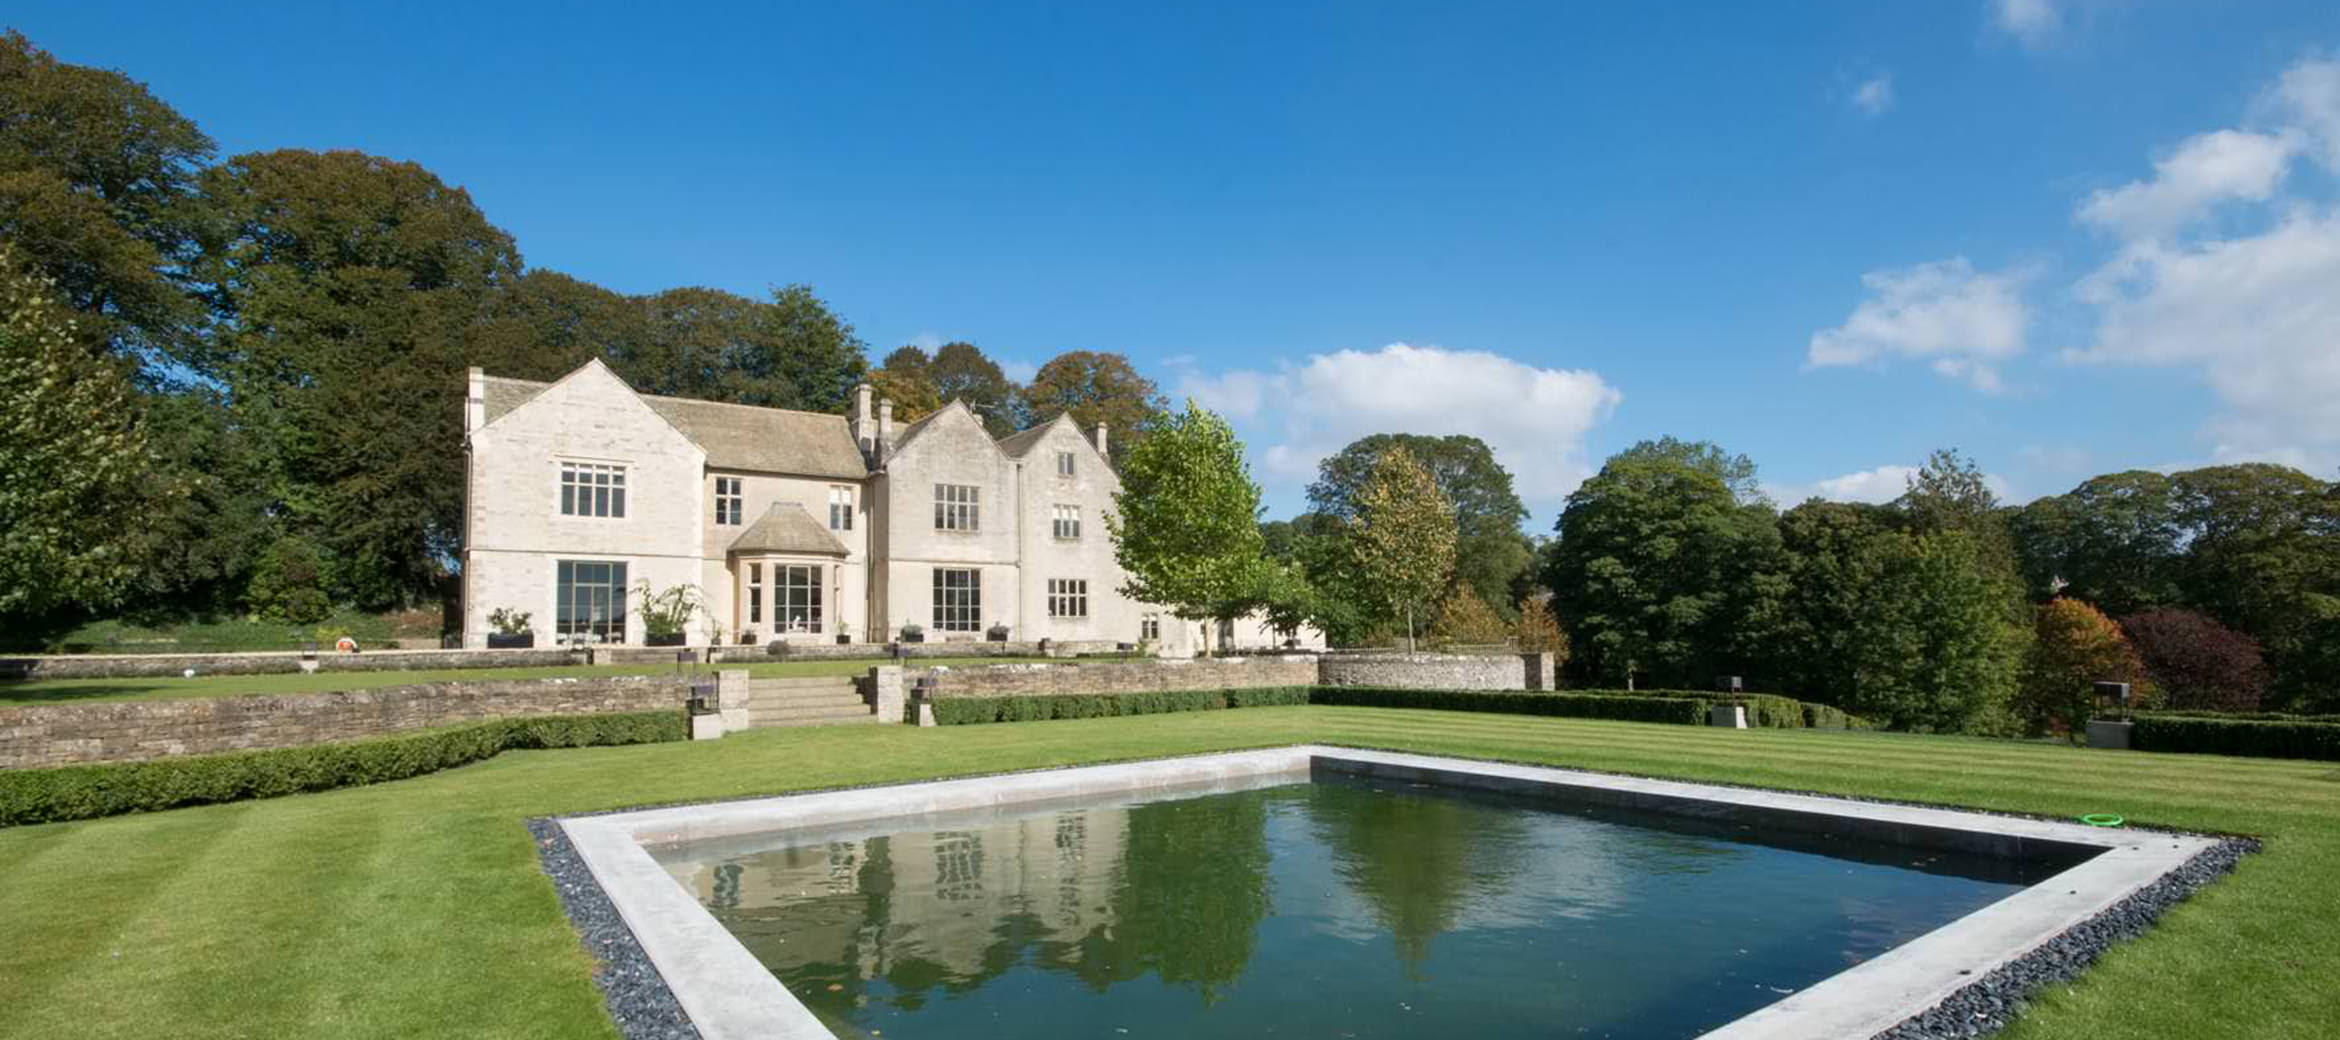 luxury-cotswold-august-house-1004-lcr